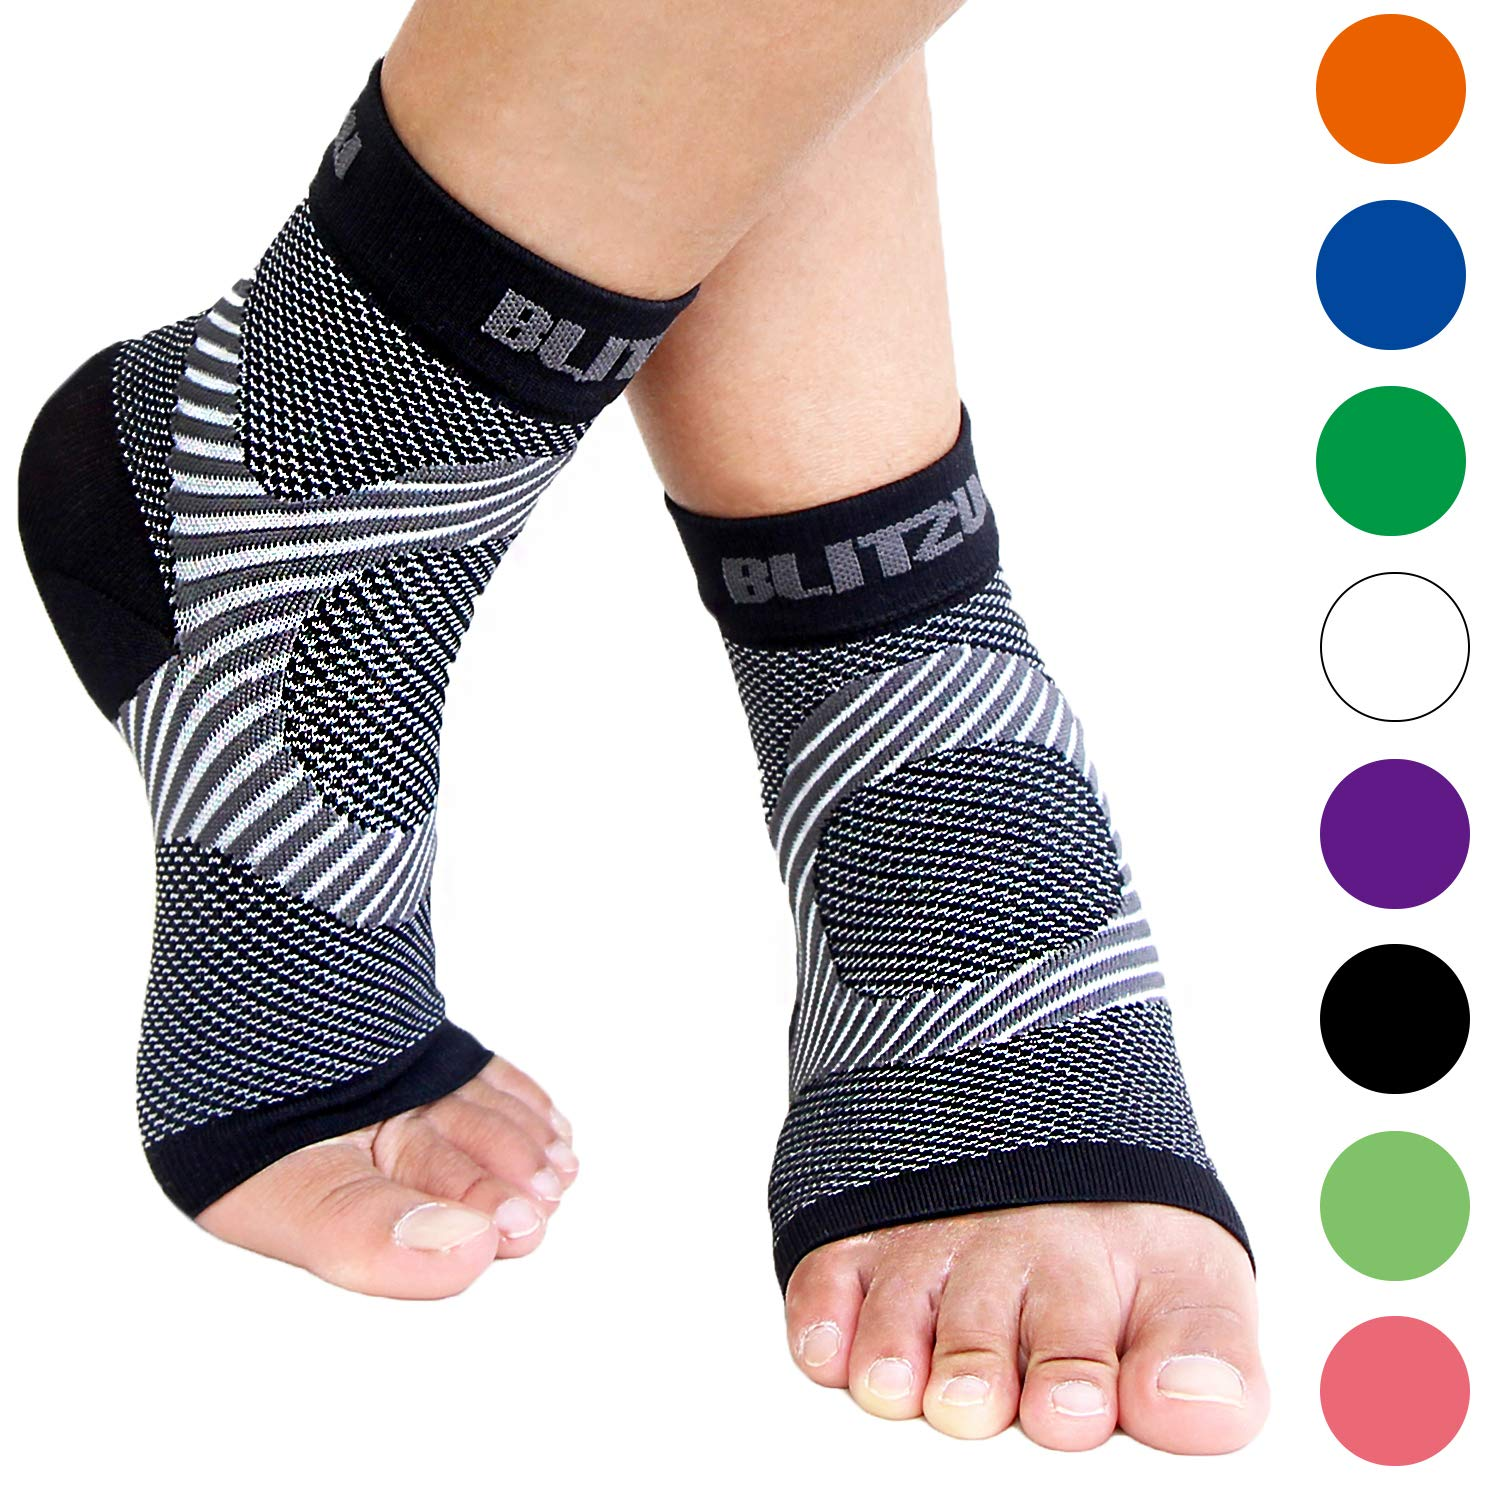 Plantar Fasciitis Socks with Arch Support, Best Foot Care Compression Sleeve, Better Than Night Splint, Eases Swelling & Heel Spurs, Ankle Brace Support, Increases Circulation, Relieve Pain Black S/M by BLITZU